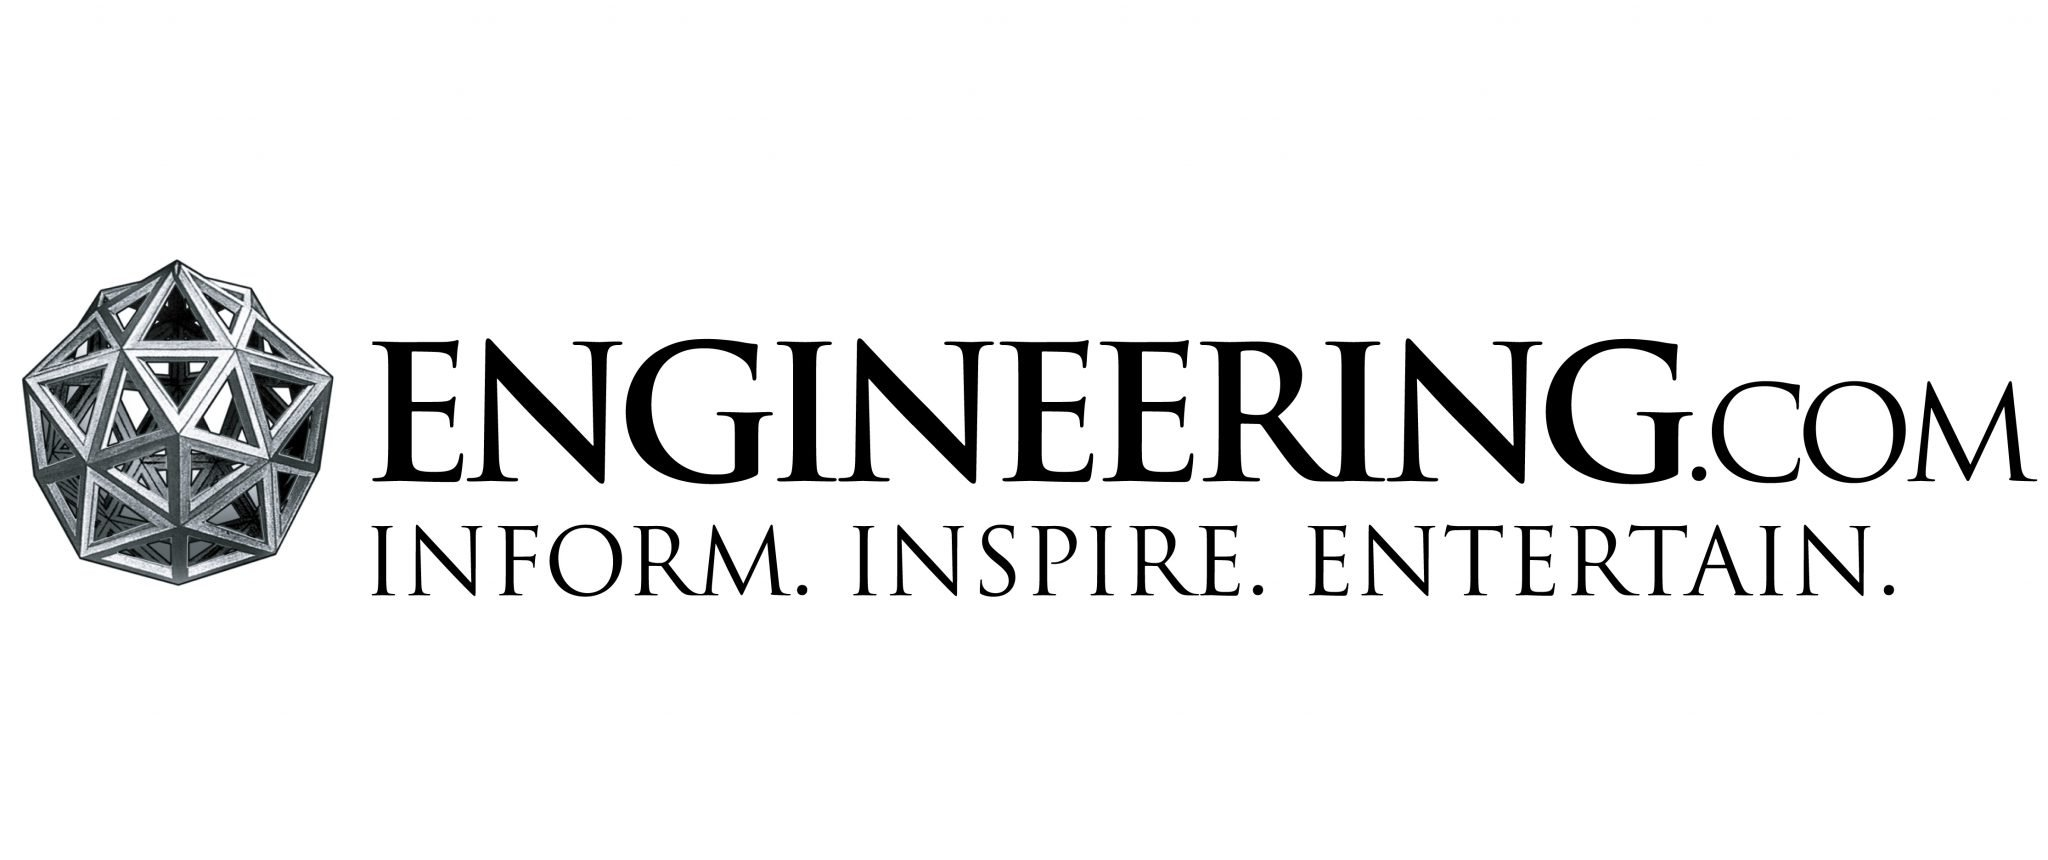 engineering.com_logo_lucis-lamp